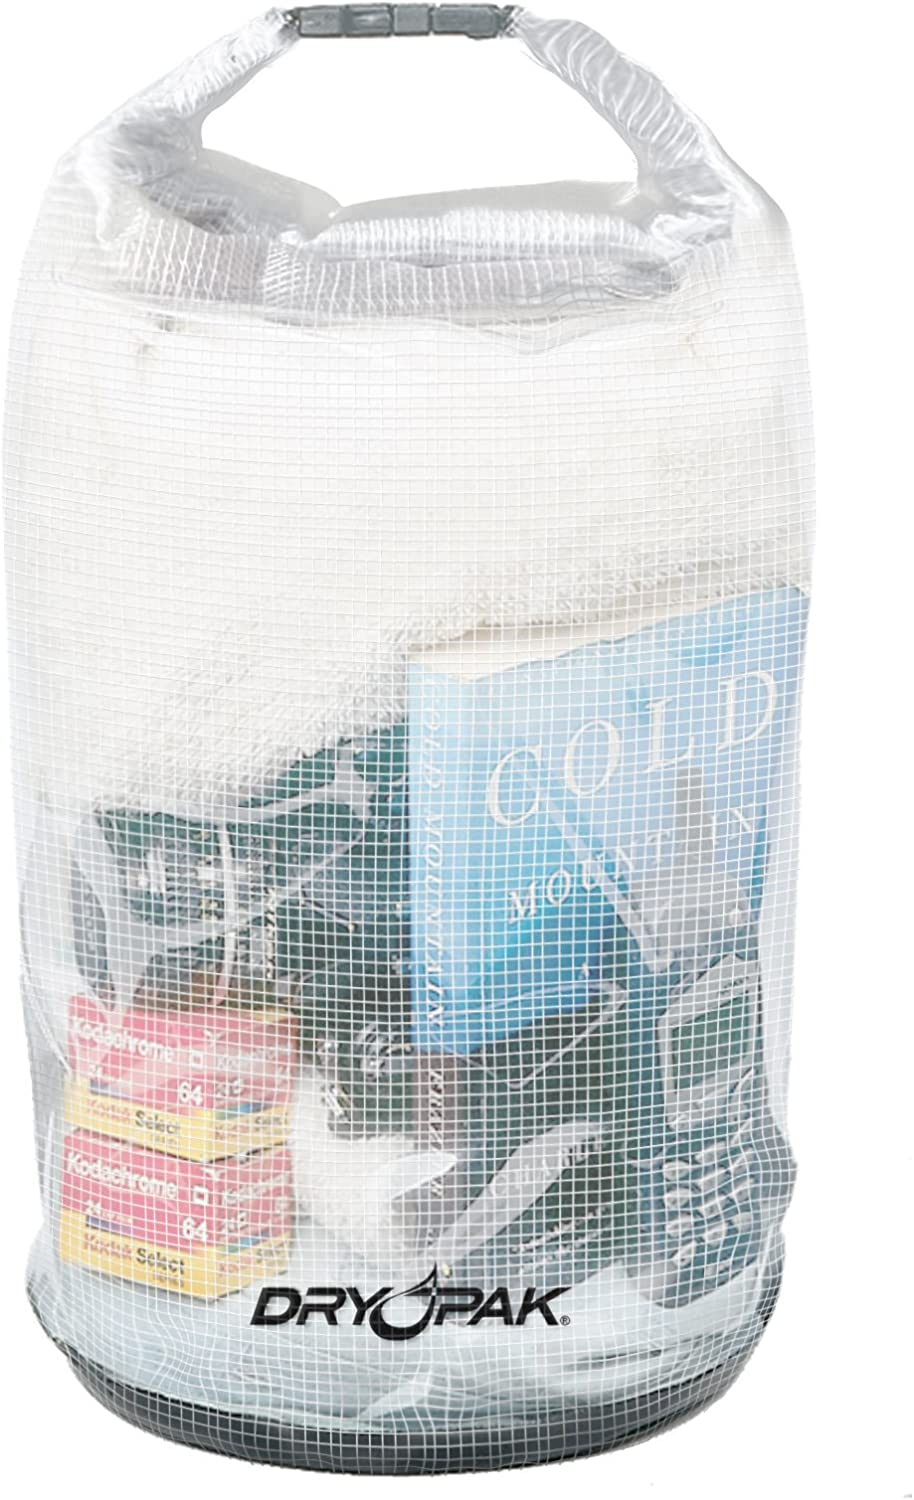 DRY PAK Roll Top Dry Gear New Free Shipping 9.5